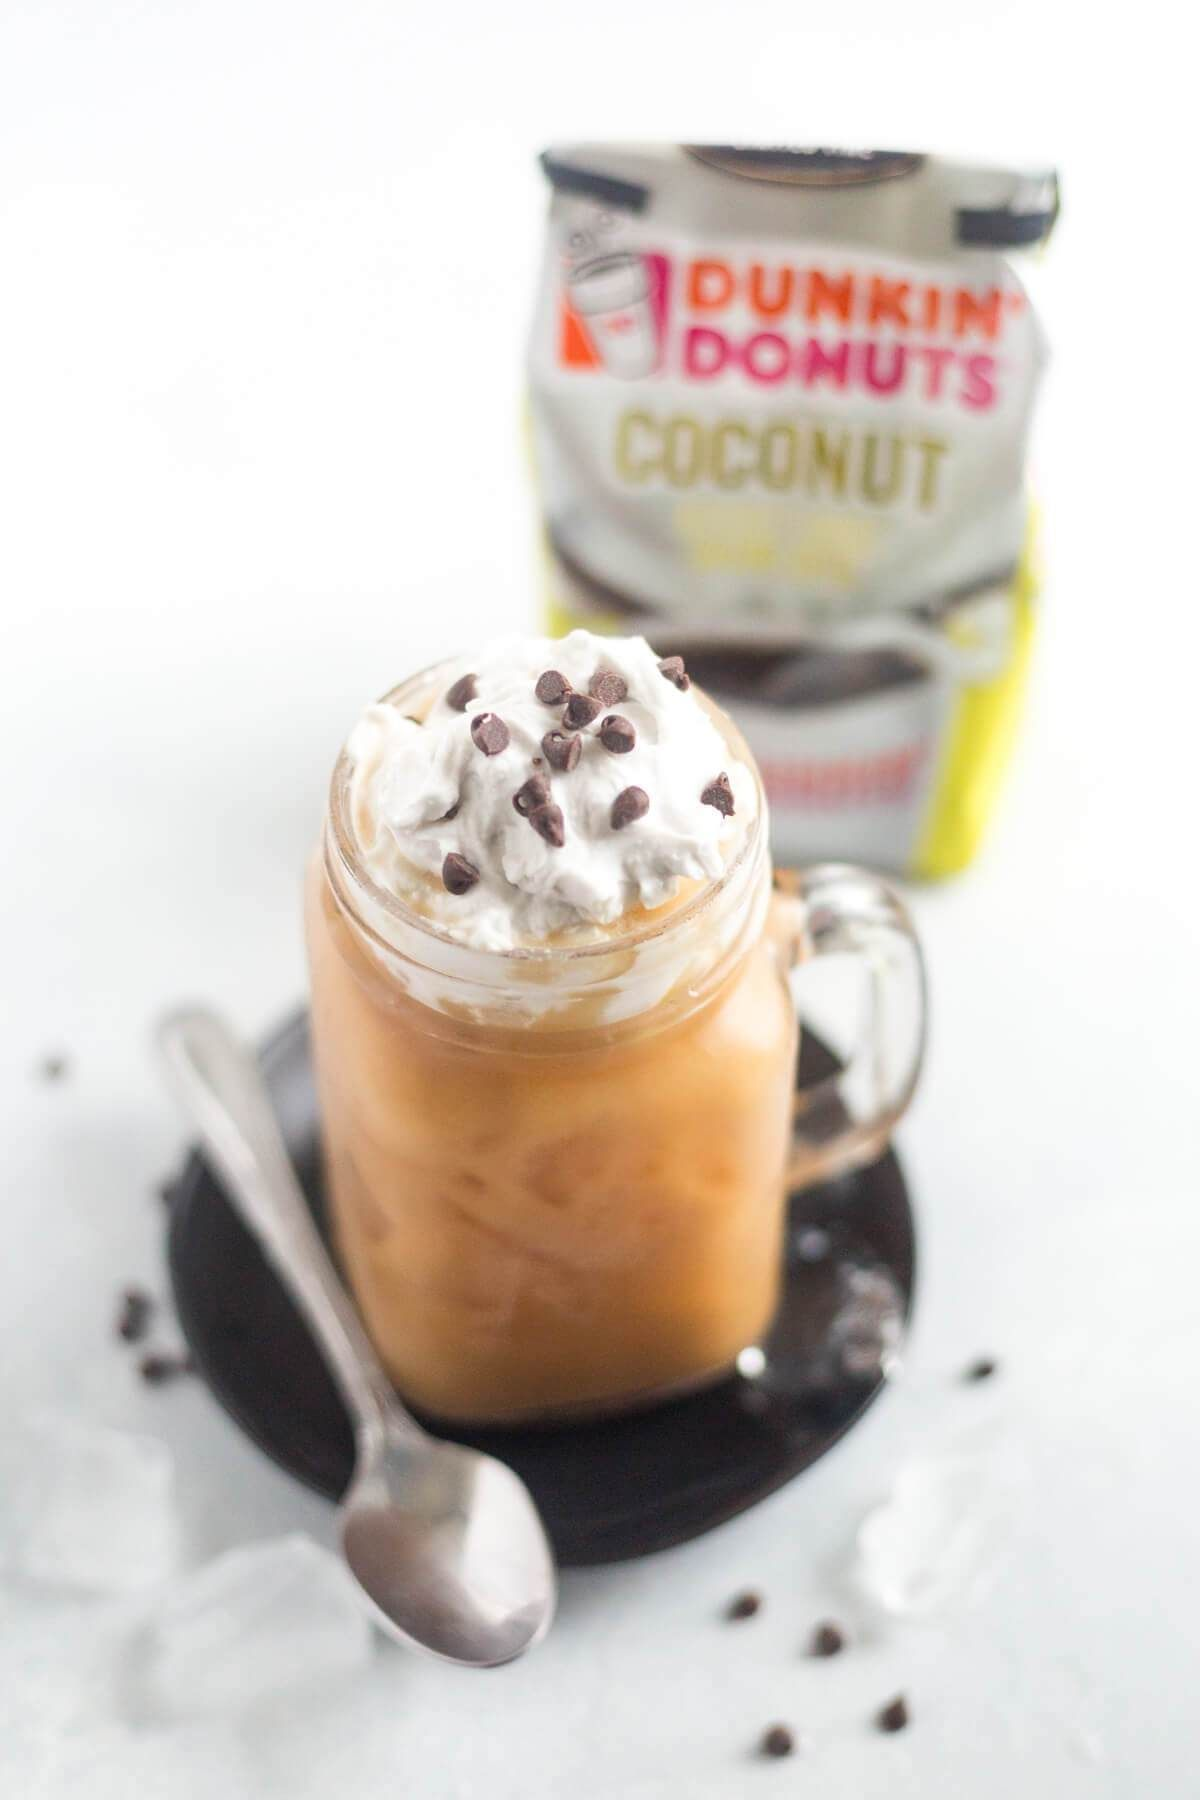 Mocha Coconut Iced Coffee is cool, refreshing and packed